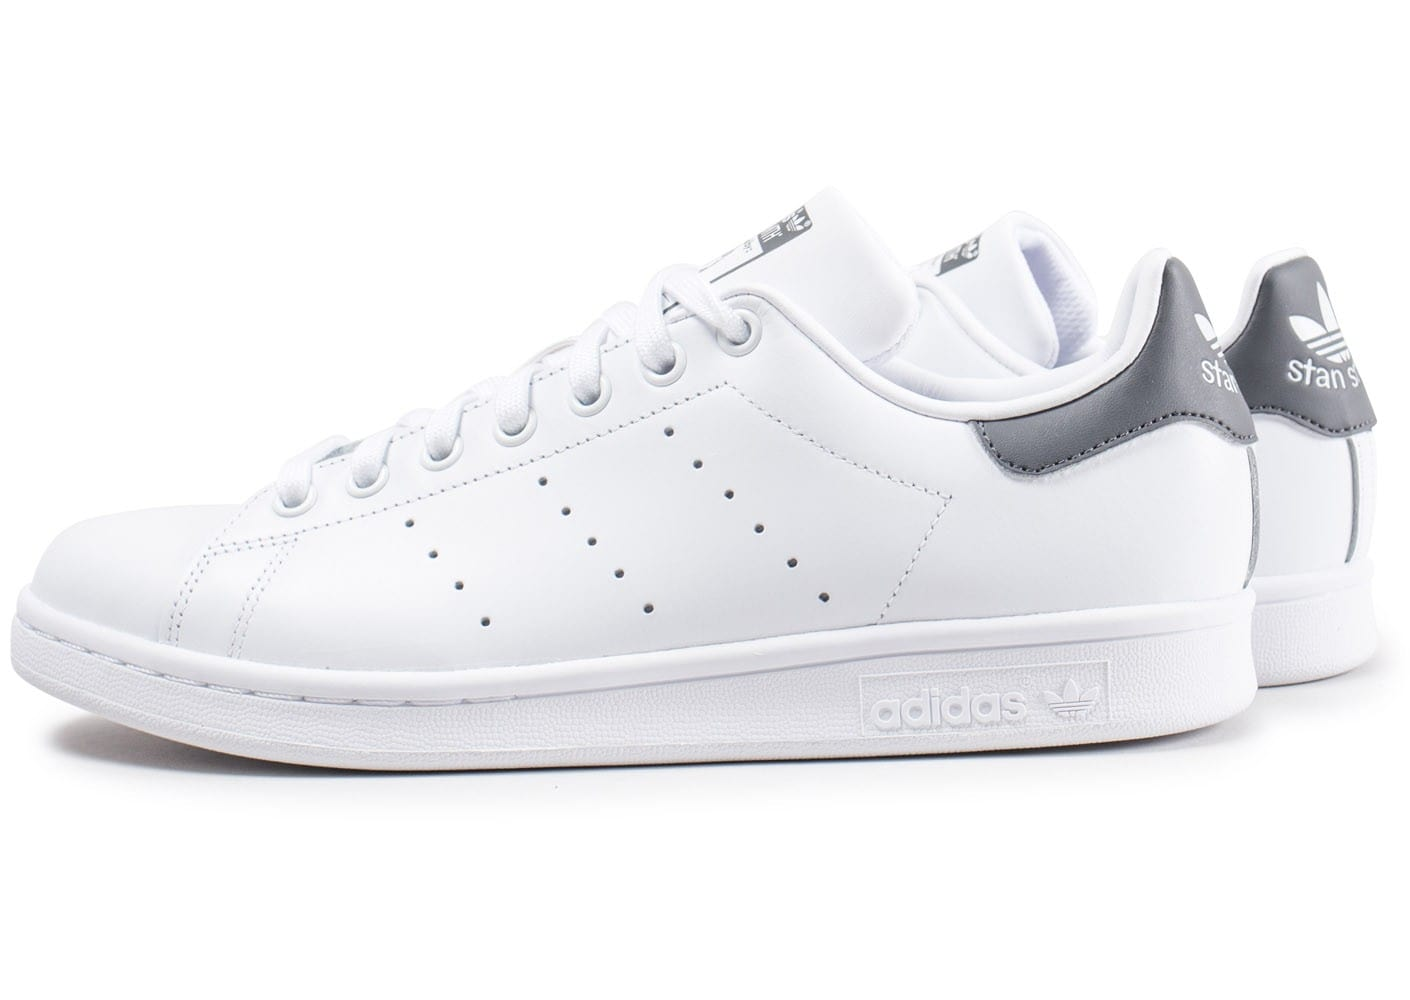 adidas stan smith blanche et grise fonc chaussures baskets homme chausport. Black Bedroom Furniture Sets. Home Design Ideas